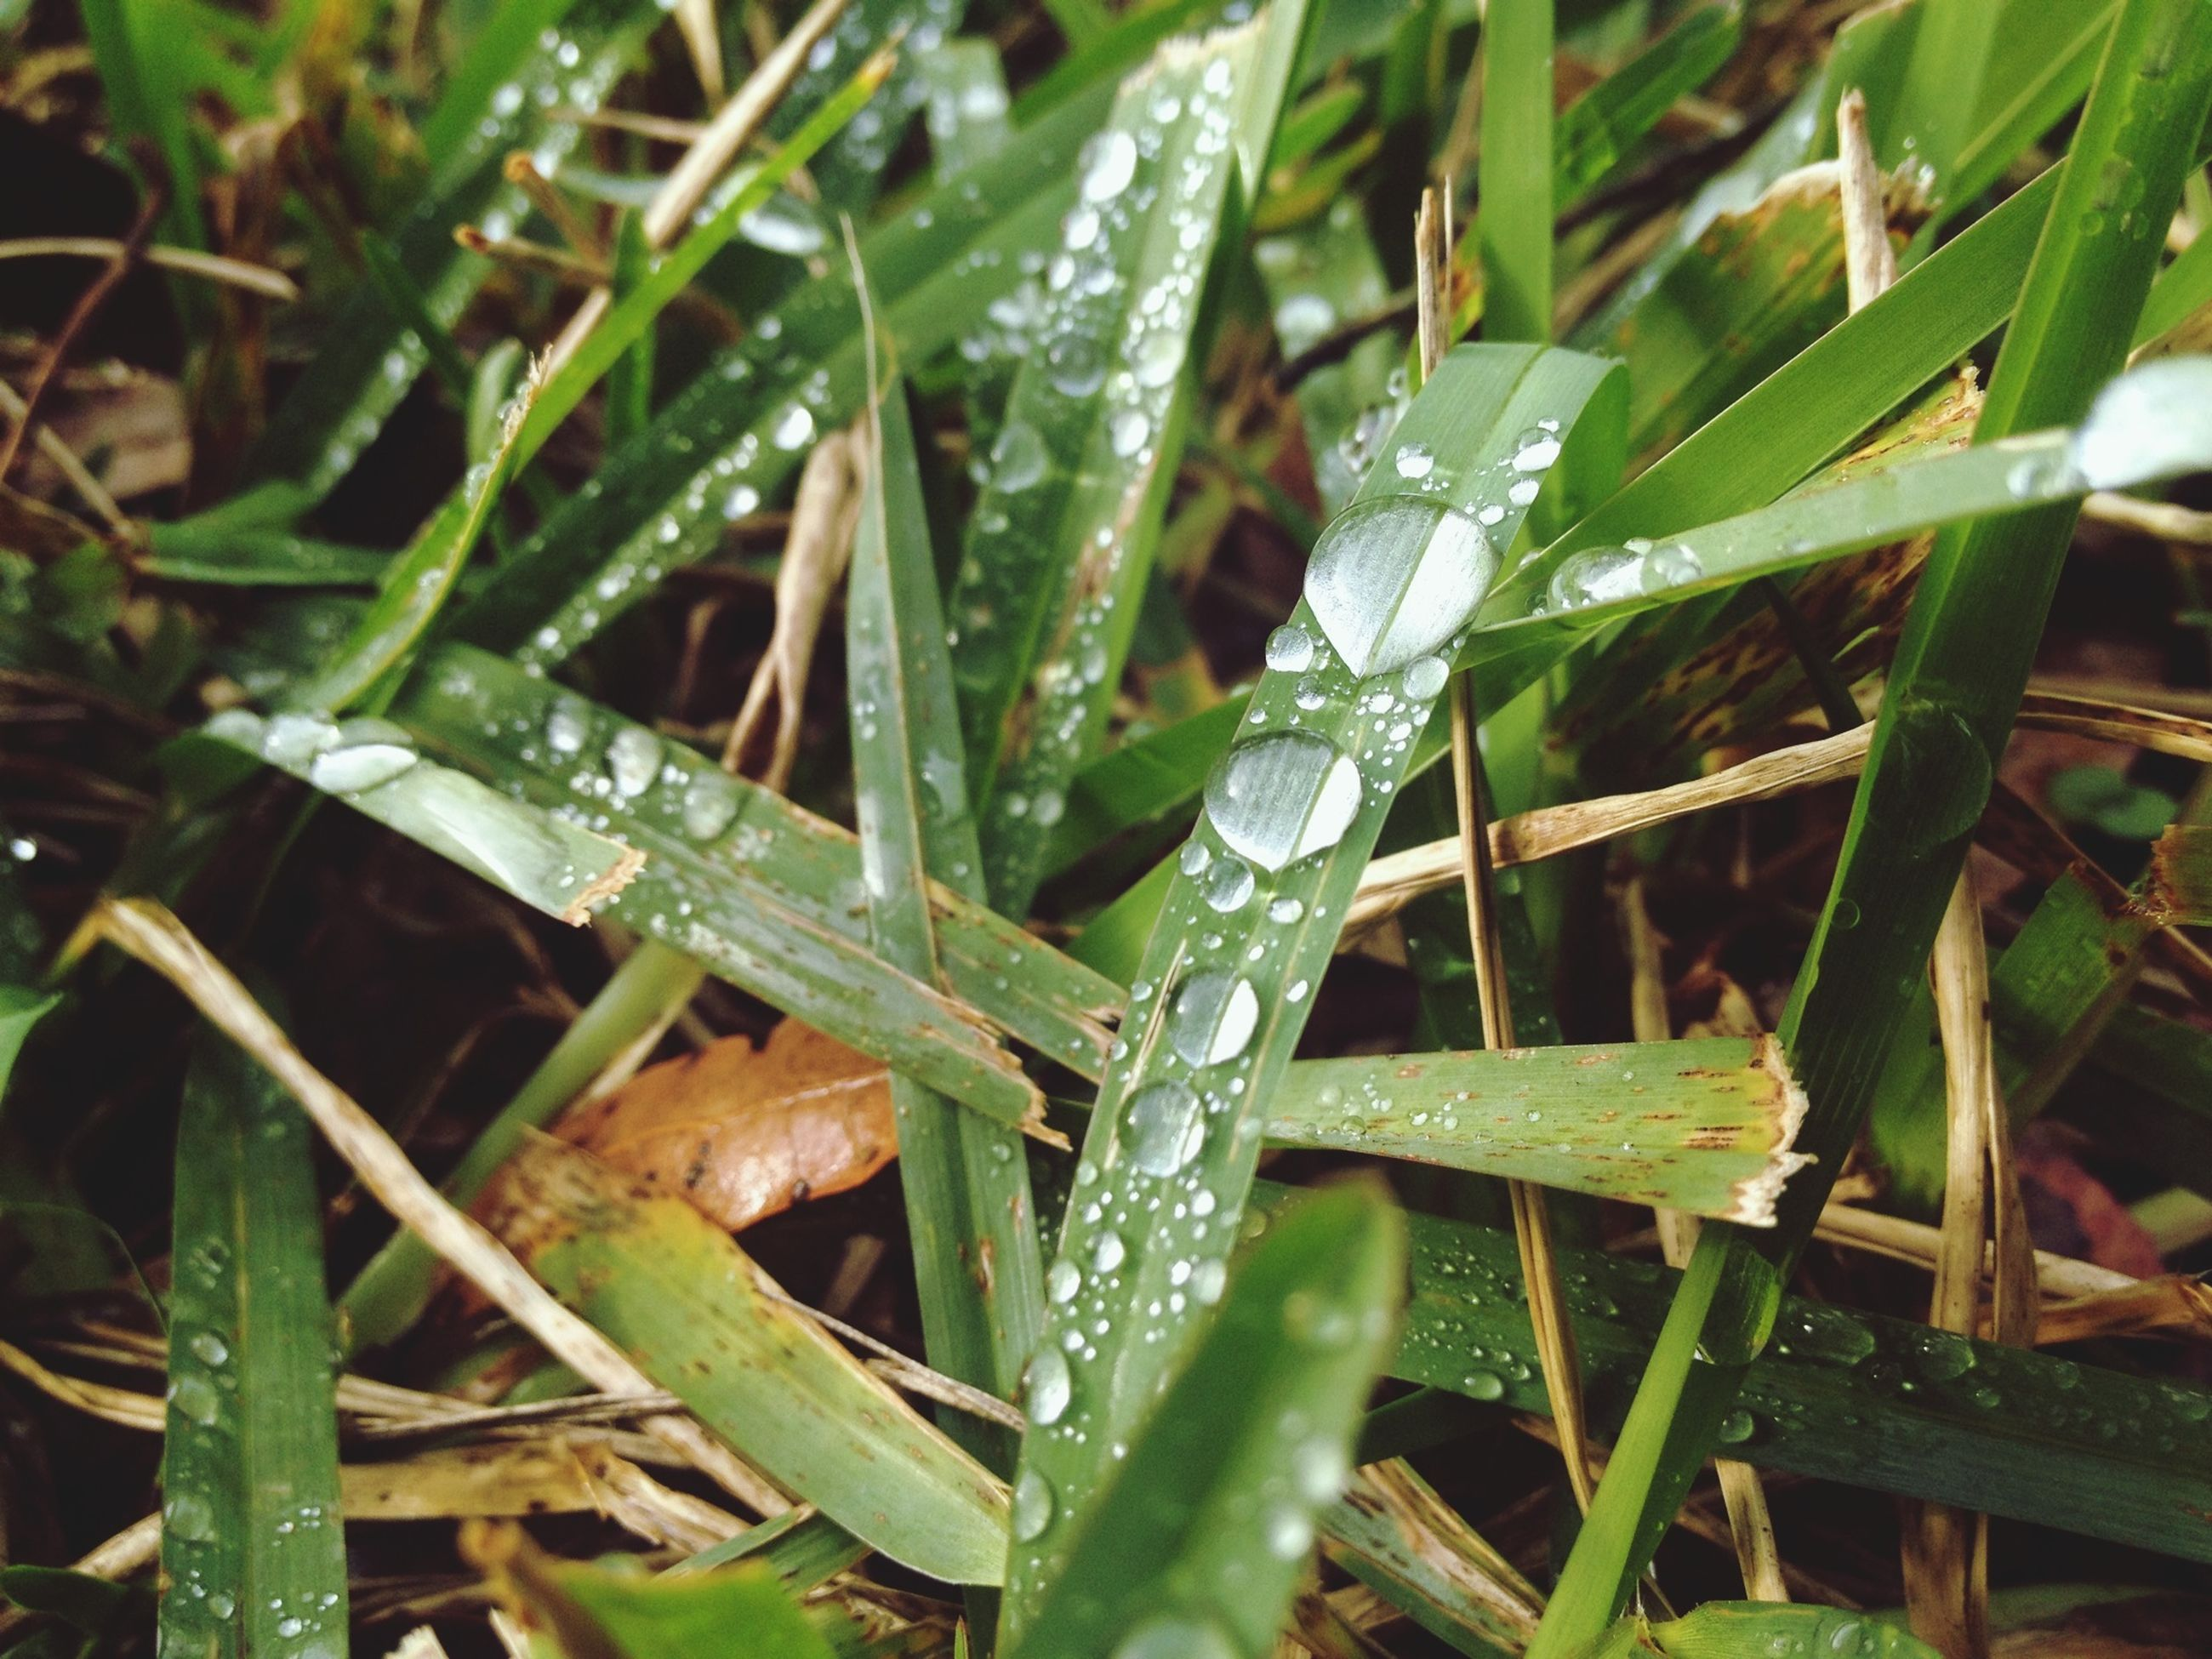 drop, water, wet, dew, growth, close-up, nature, green color, freshness, grass, raindrop, beauty in nature, rain, leaf, plant, droplet, blade of grass, fragility, purity, focus on foreground